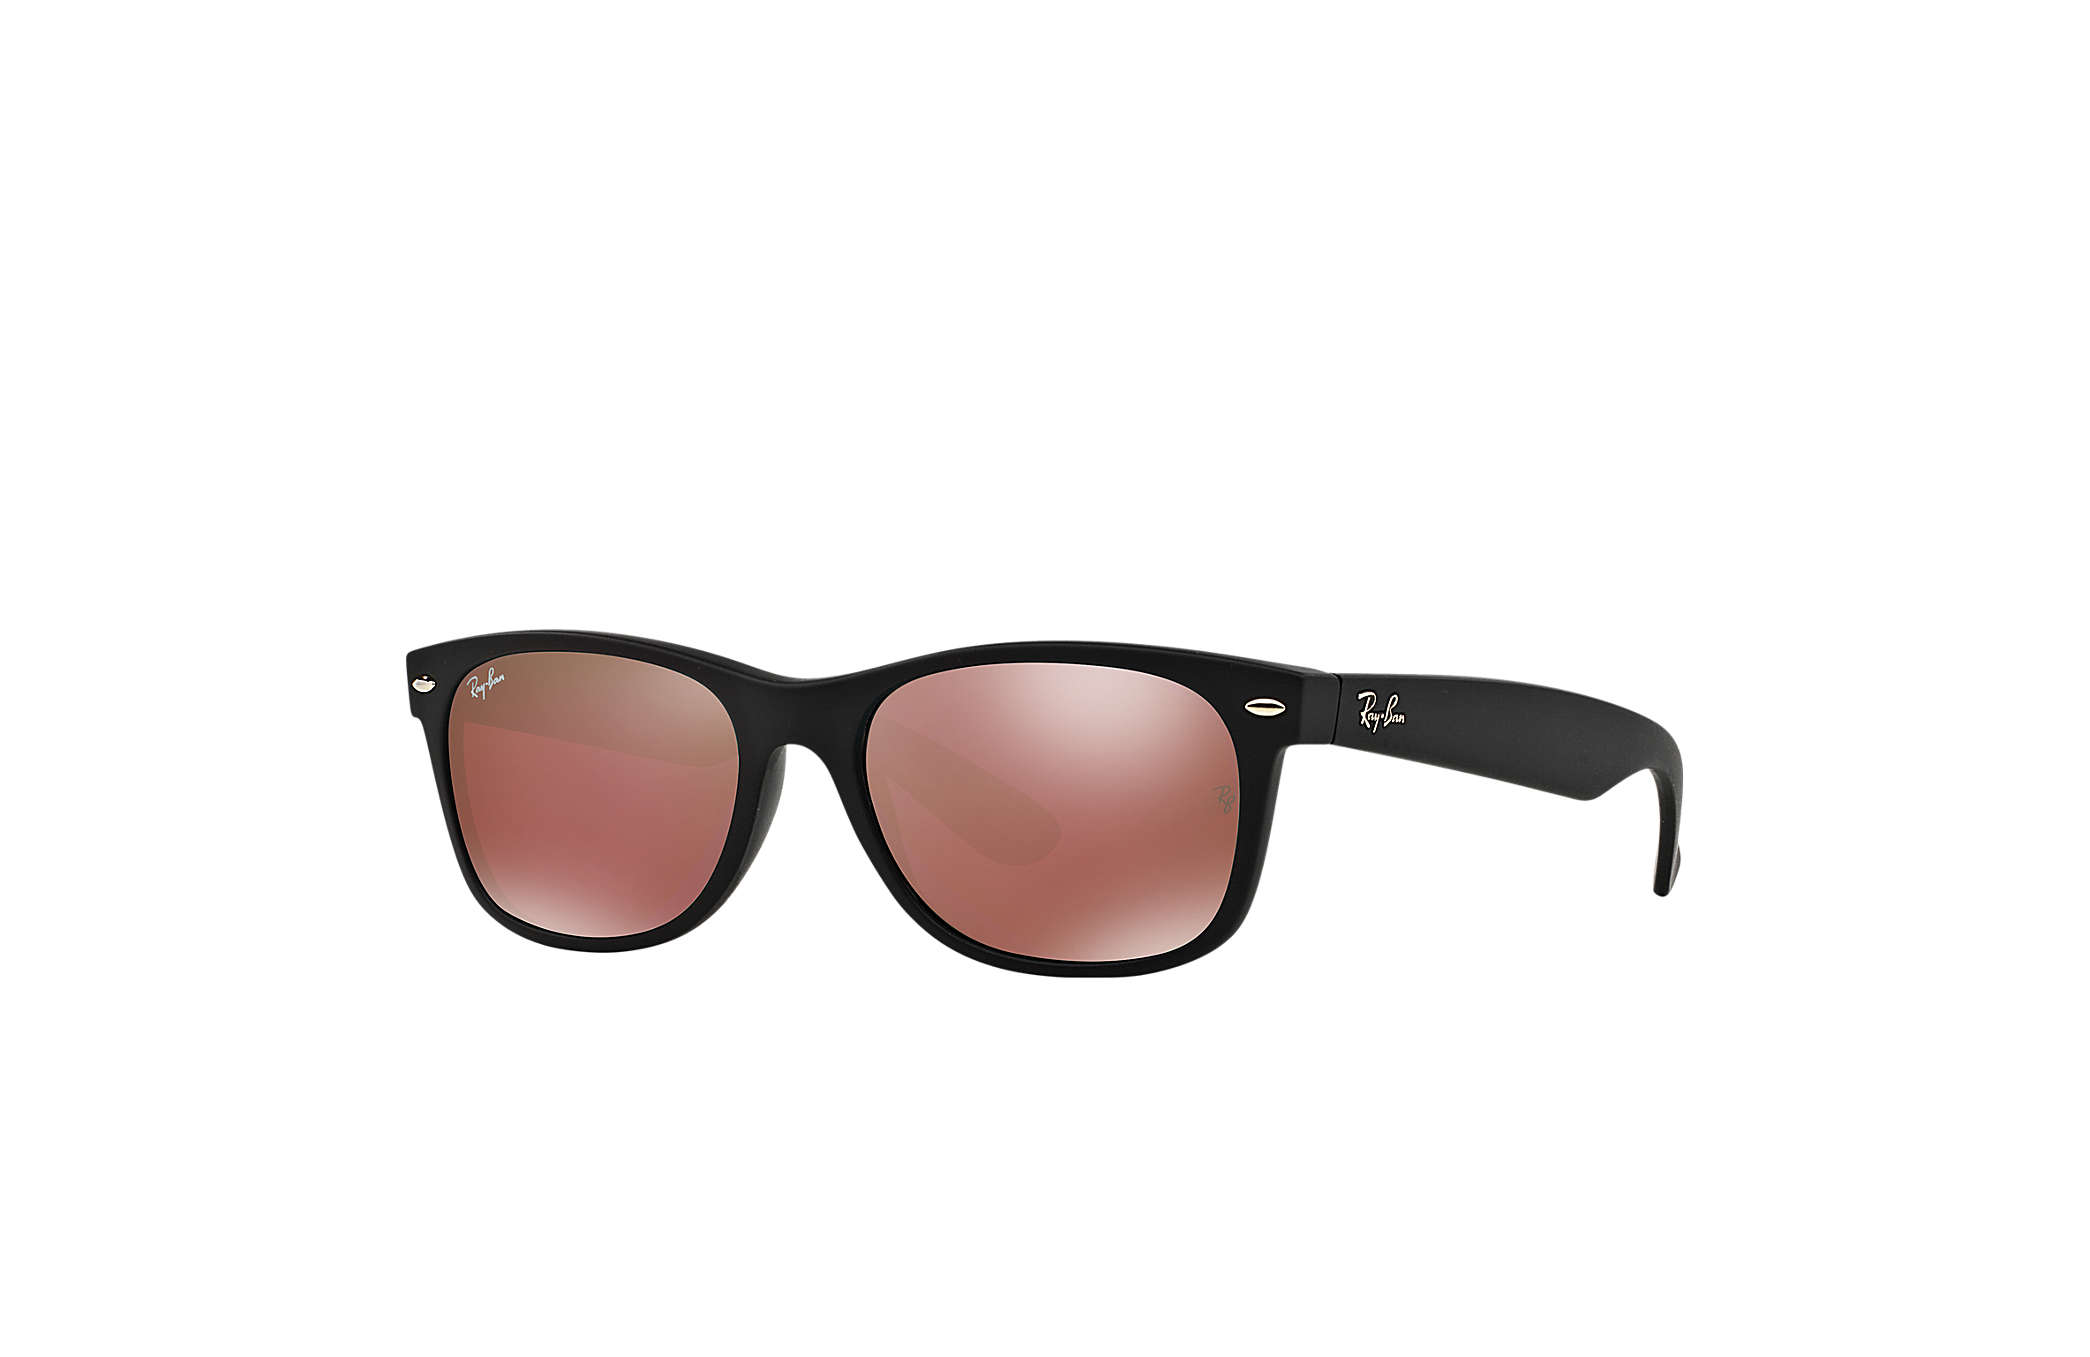 sunglasses ray ban  Ray-Ban New Wayfarer Flash Black, RB2132